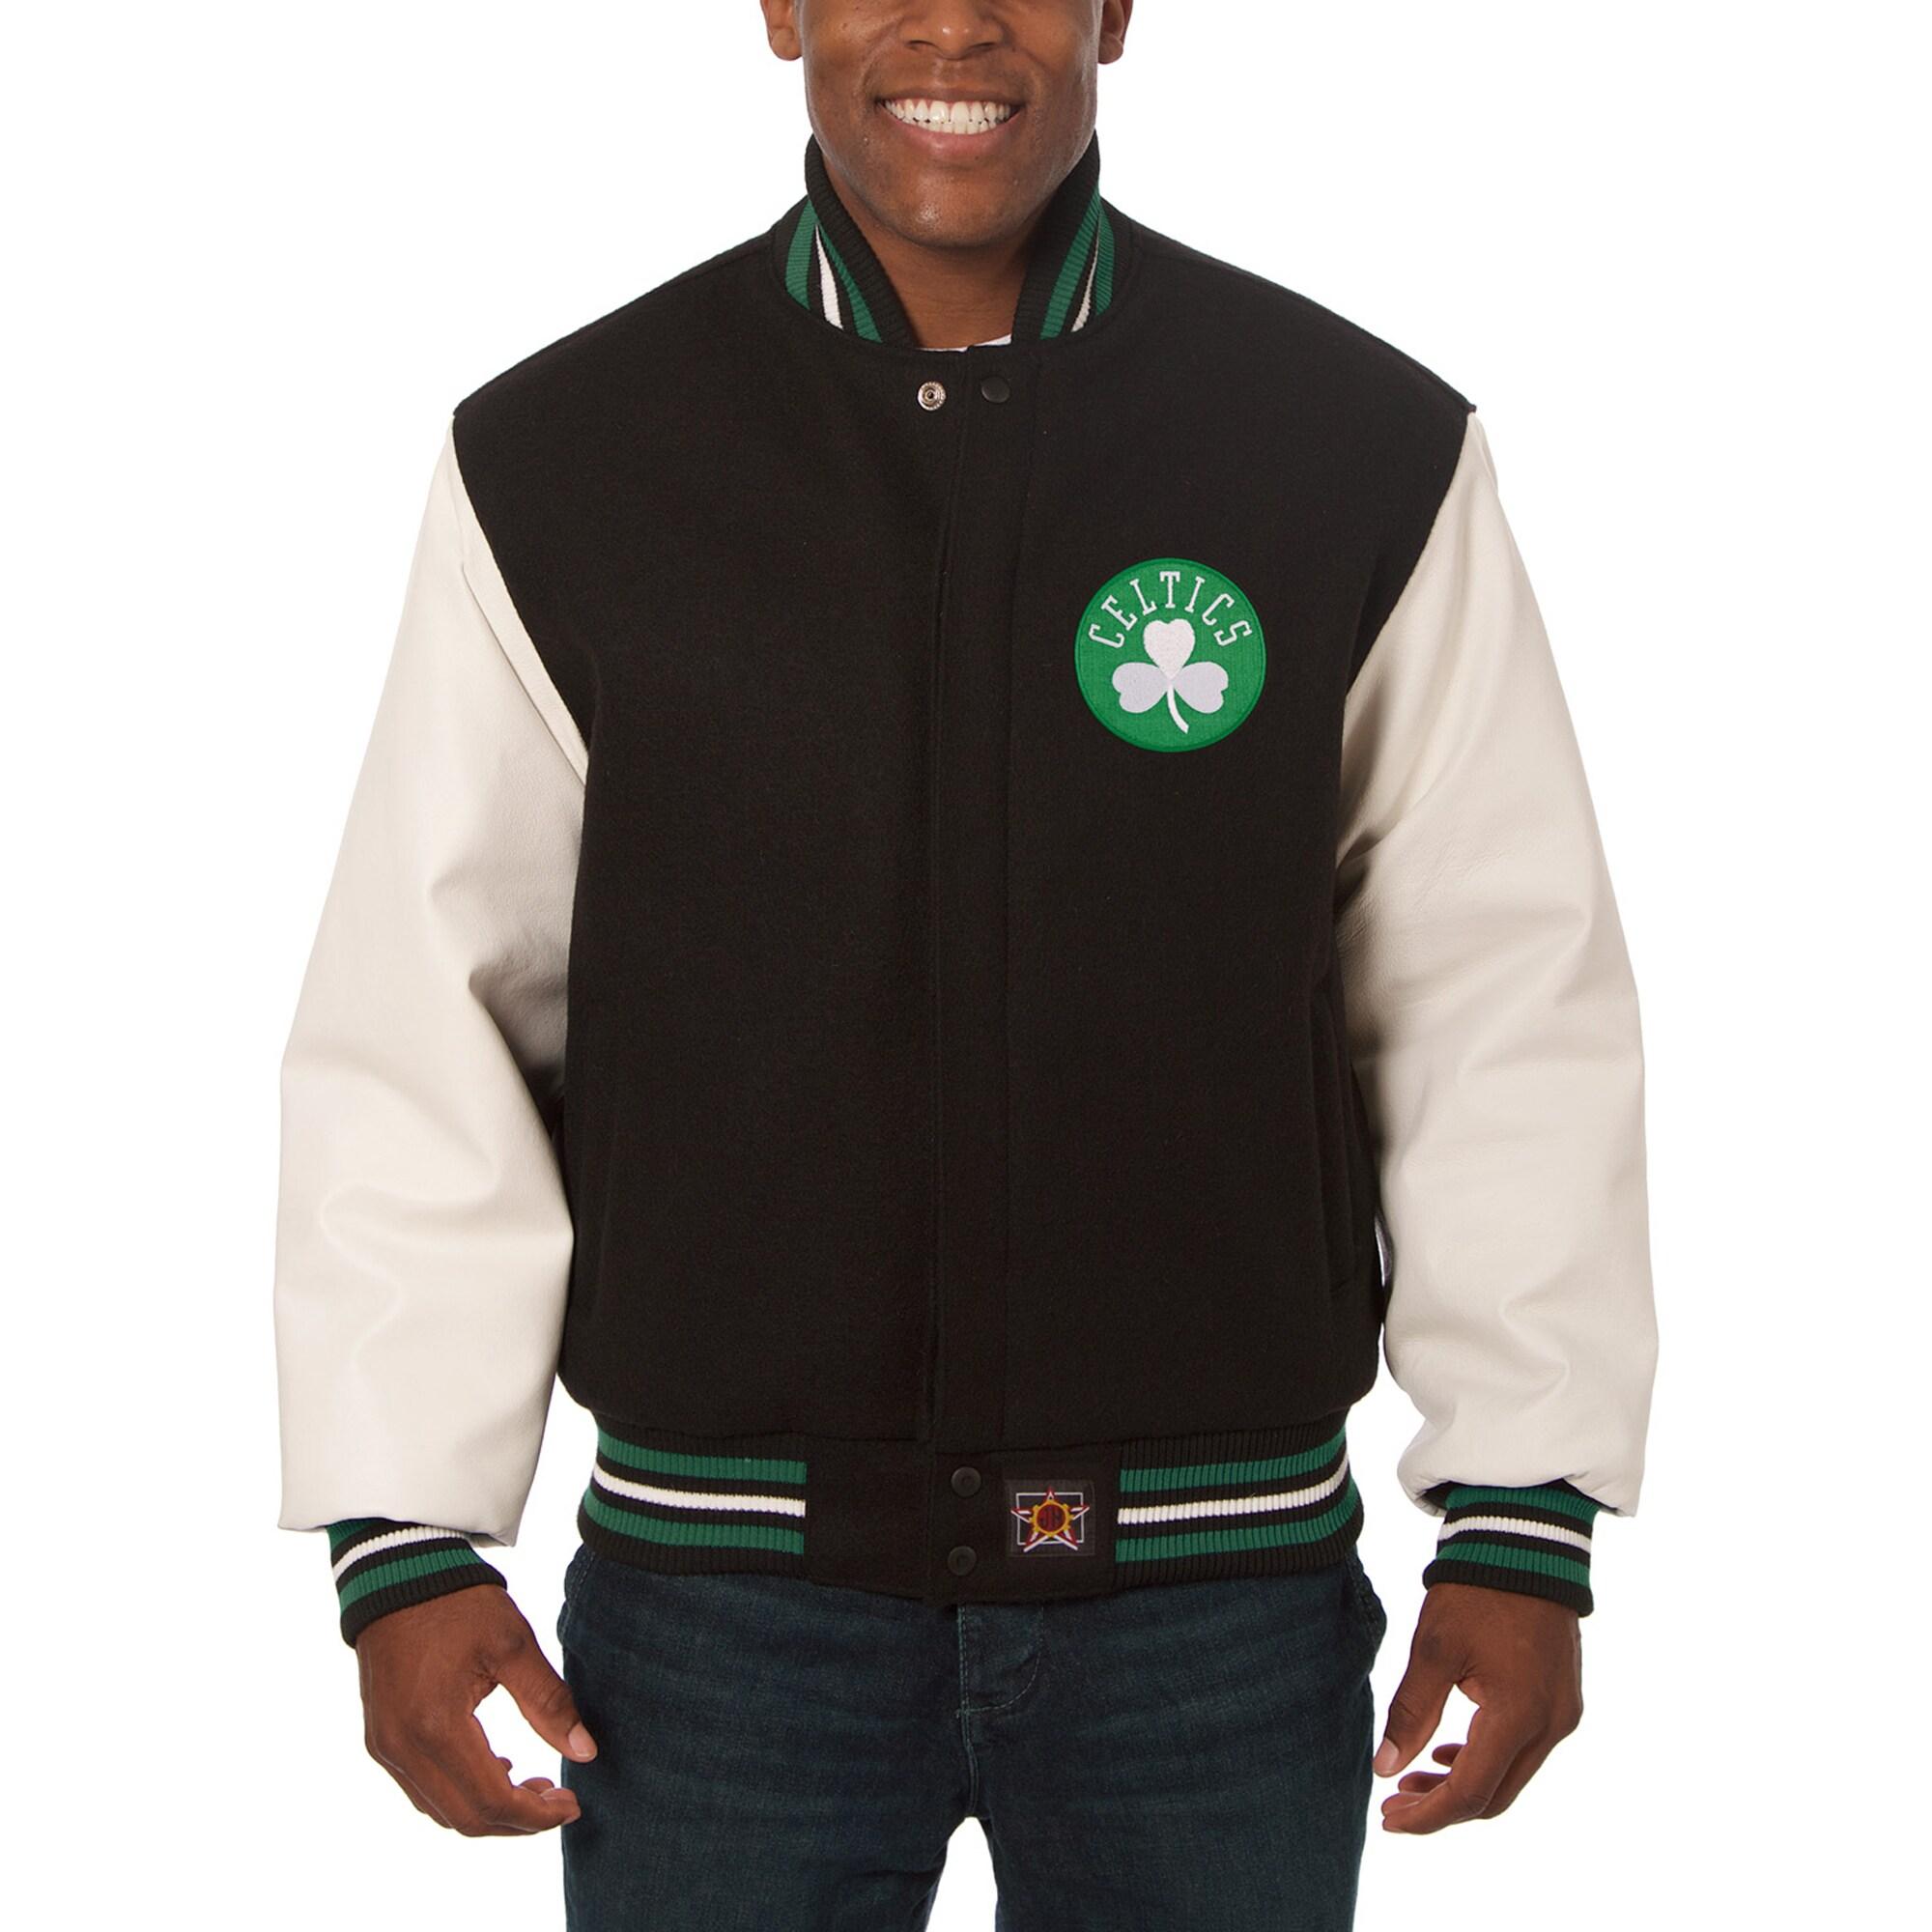 Boston Celtics JH Design Big & Tall Wool & Leather Jacket - Black/White